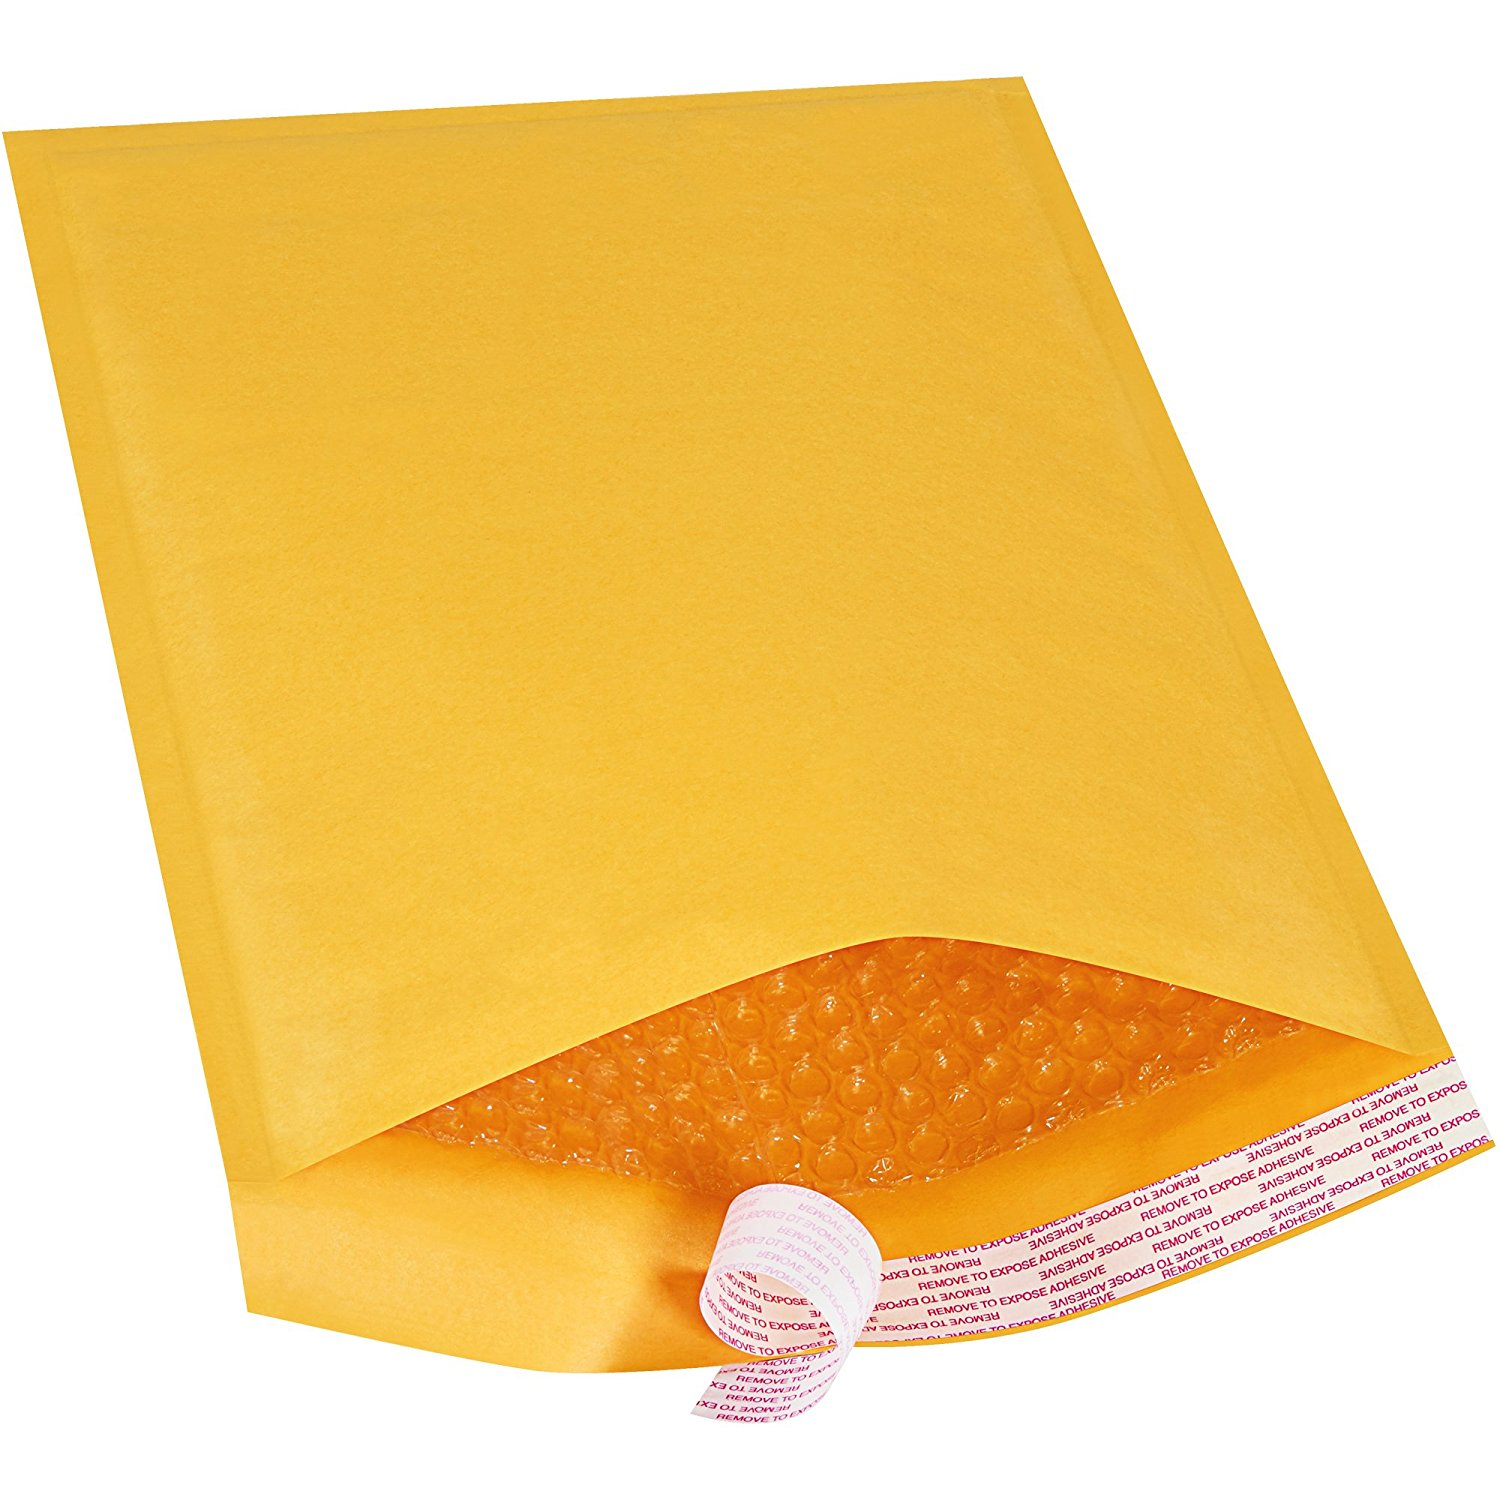 "Ship Now Supply SNB857SSR Self-Seal Bubble Mailers, #4, 9 1/2"" x 14 1/2"", 9.5"" width, 14.5"" Length, Kraft (Pack of 70)"